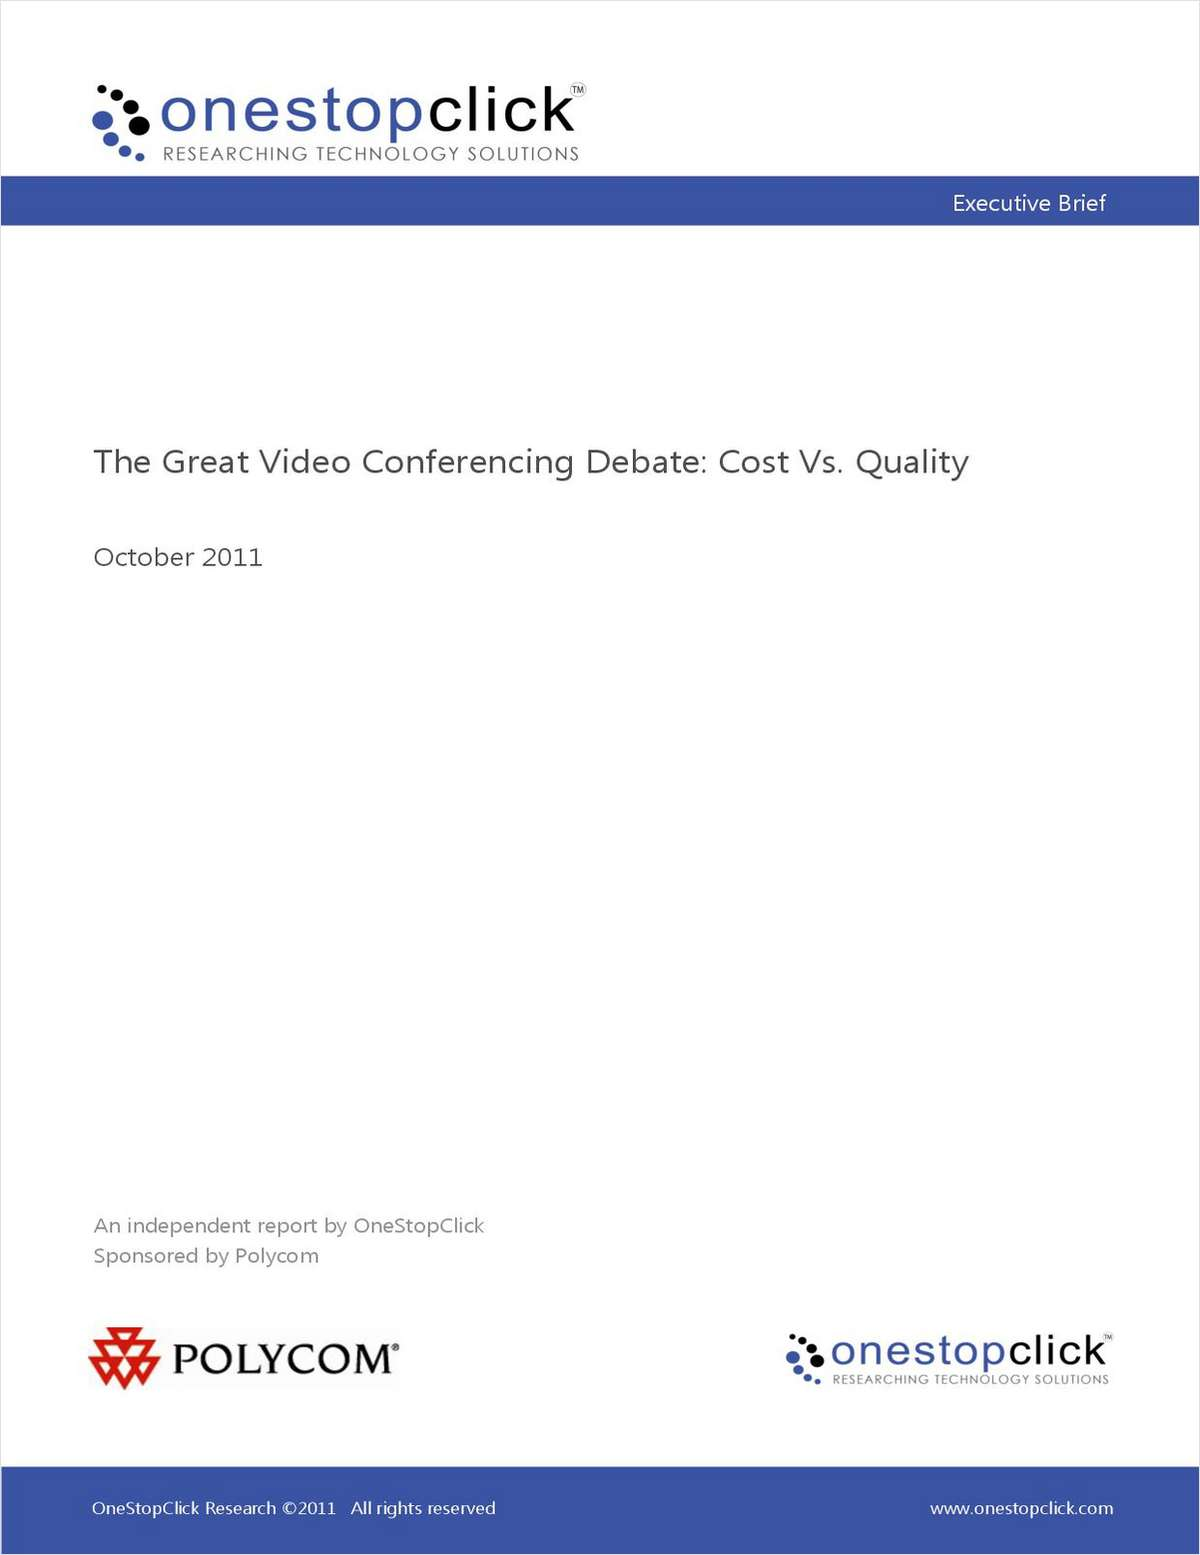 The Great Video Conferencing Debate: Cost Vs. Quality